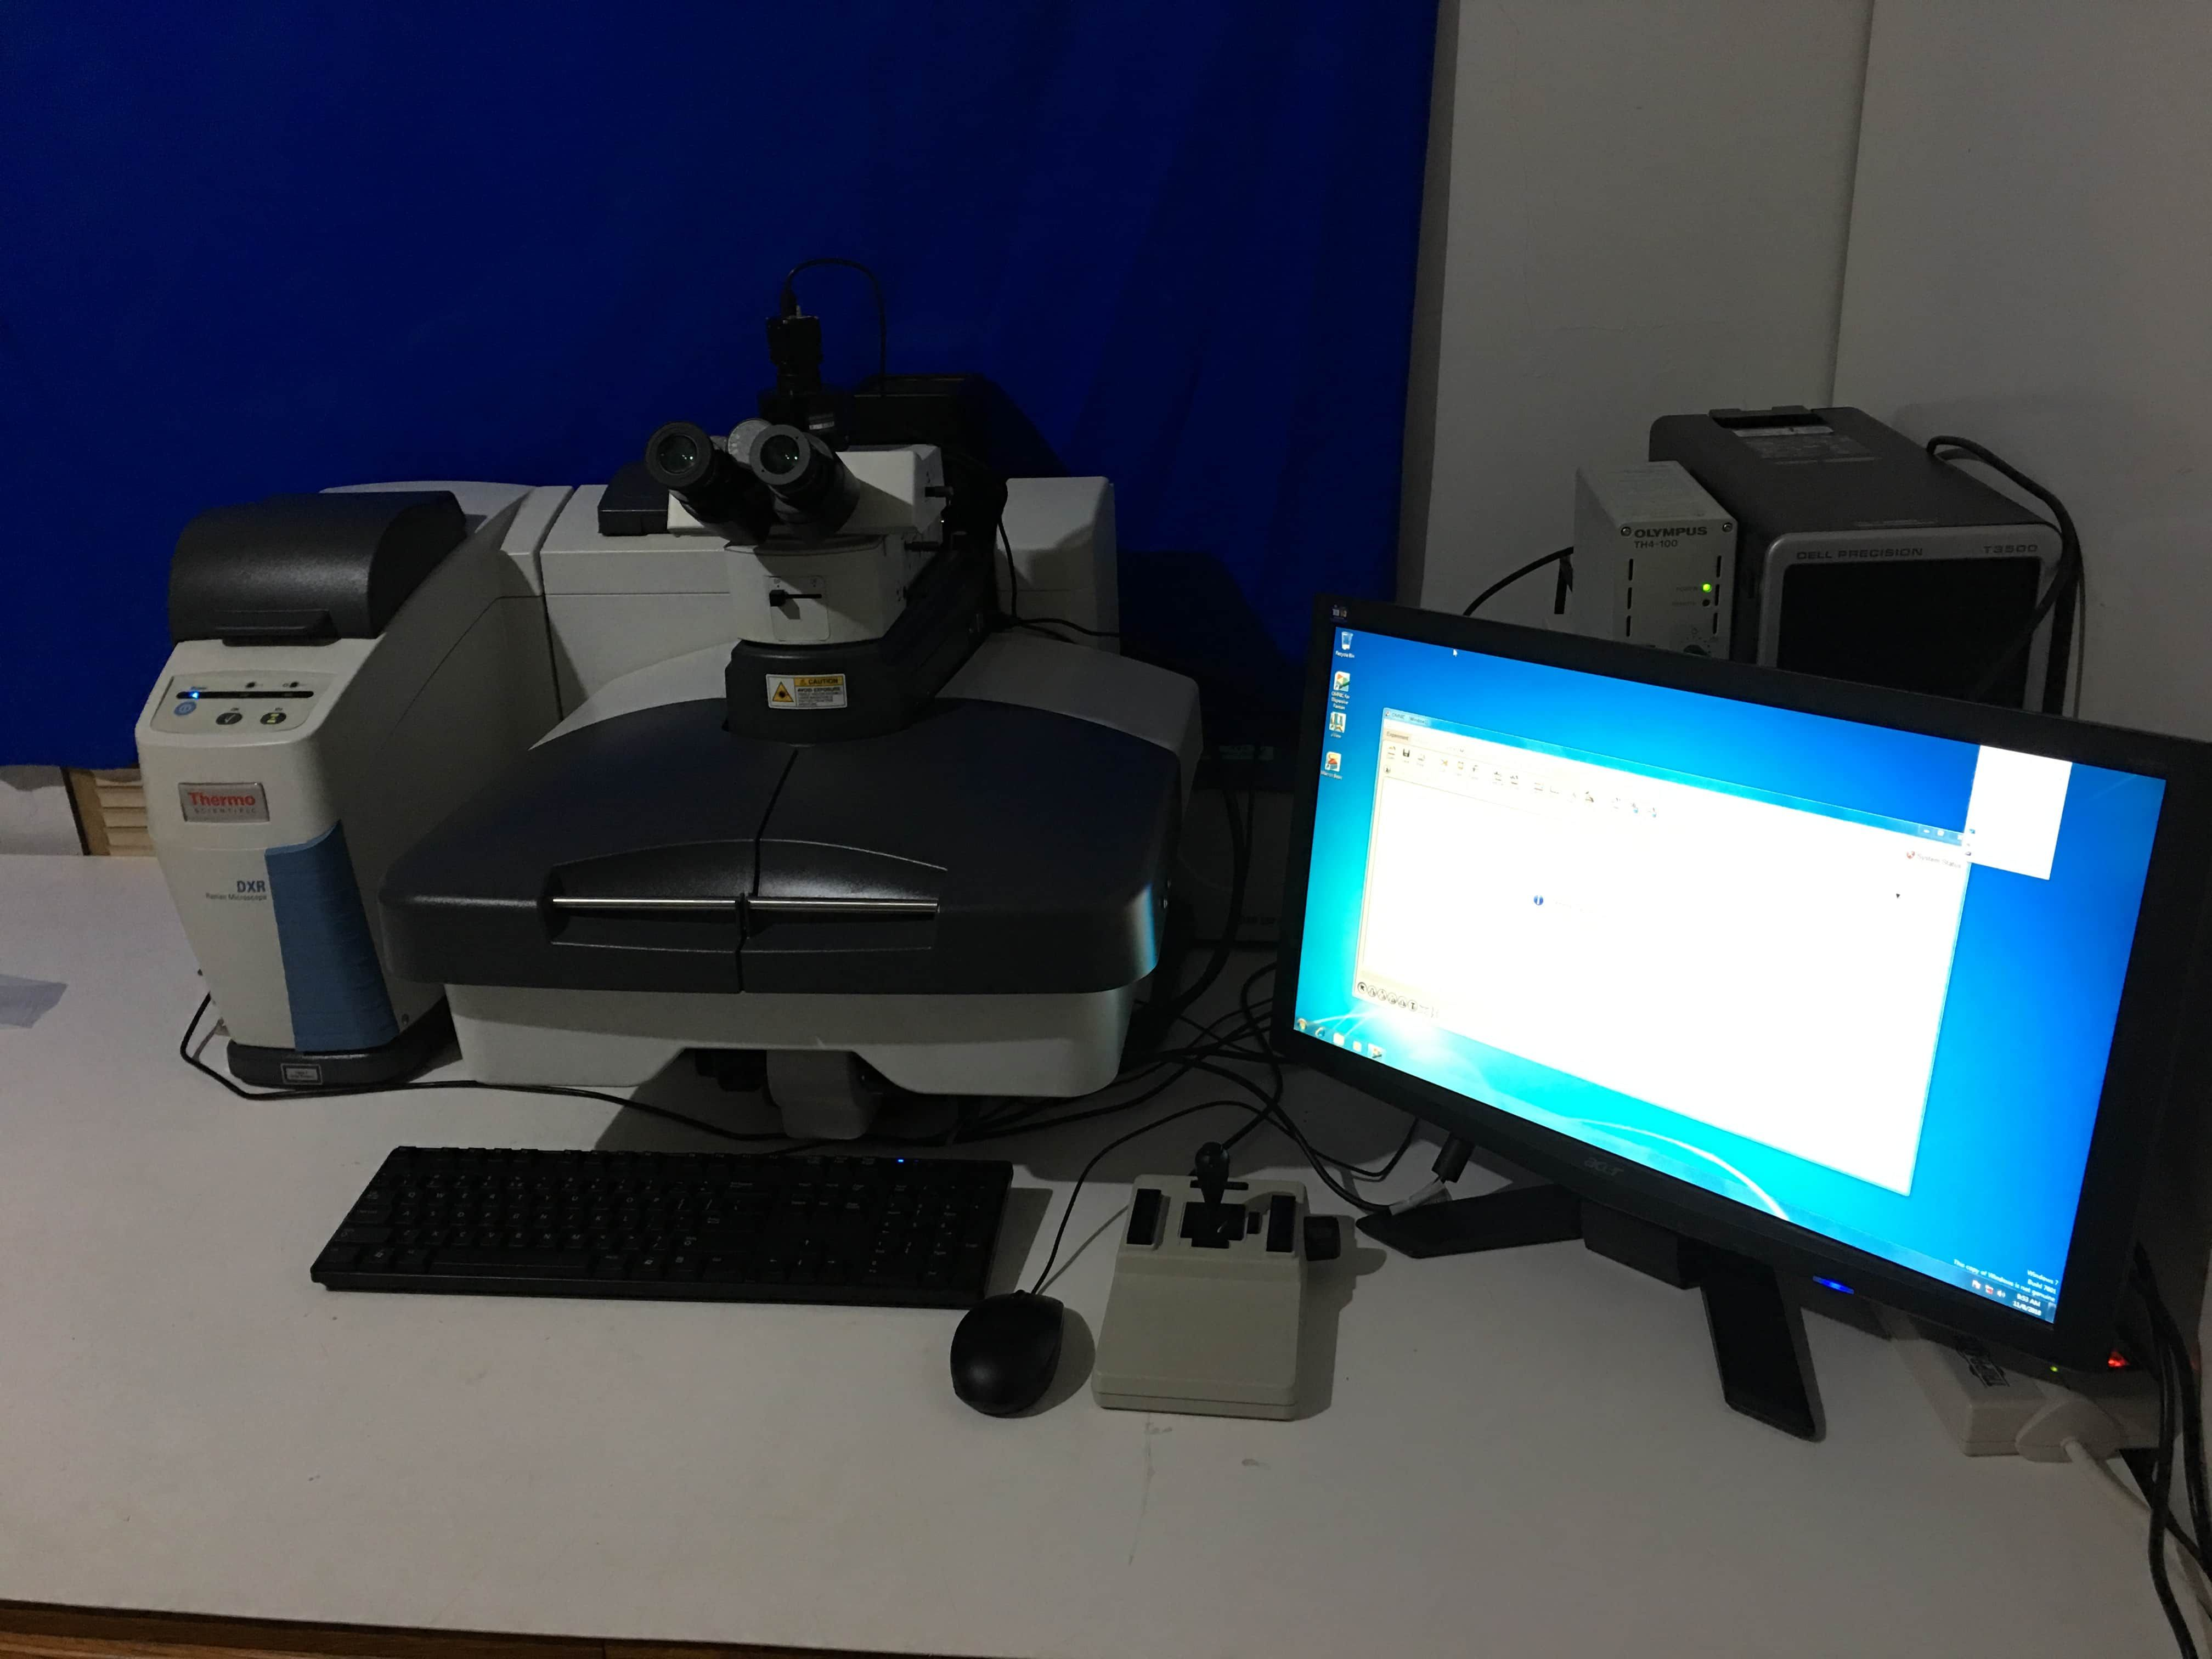 Thermo Electron DXR Raman Microscope Olympus BX51 Prior scanning stage OMNIC